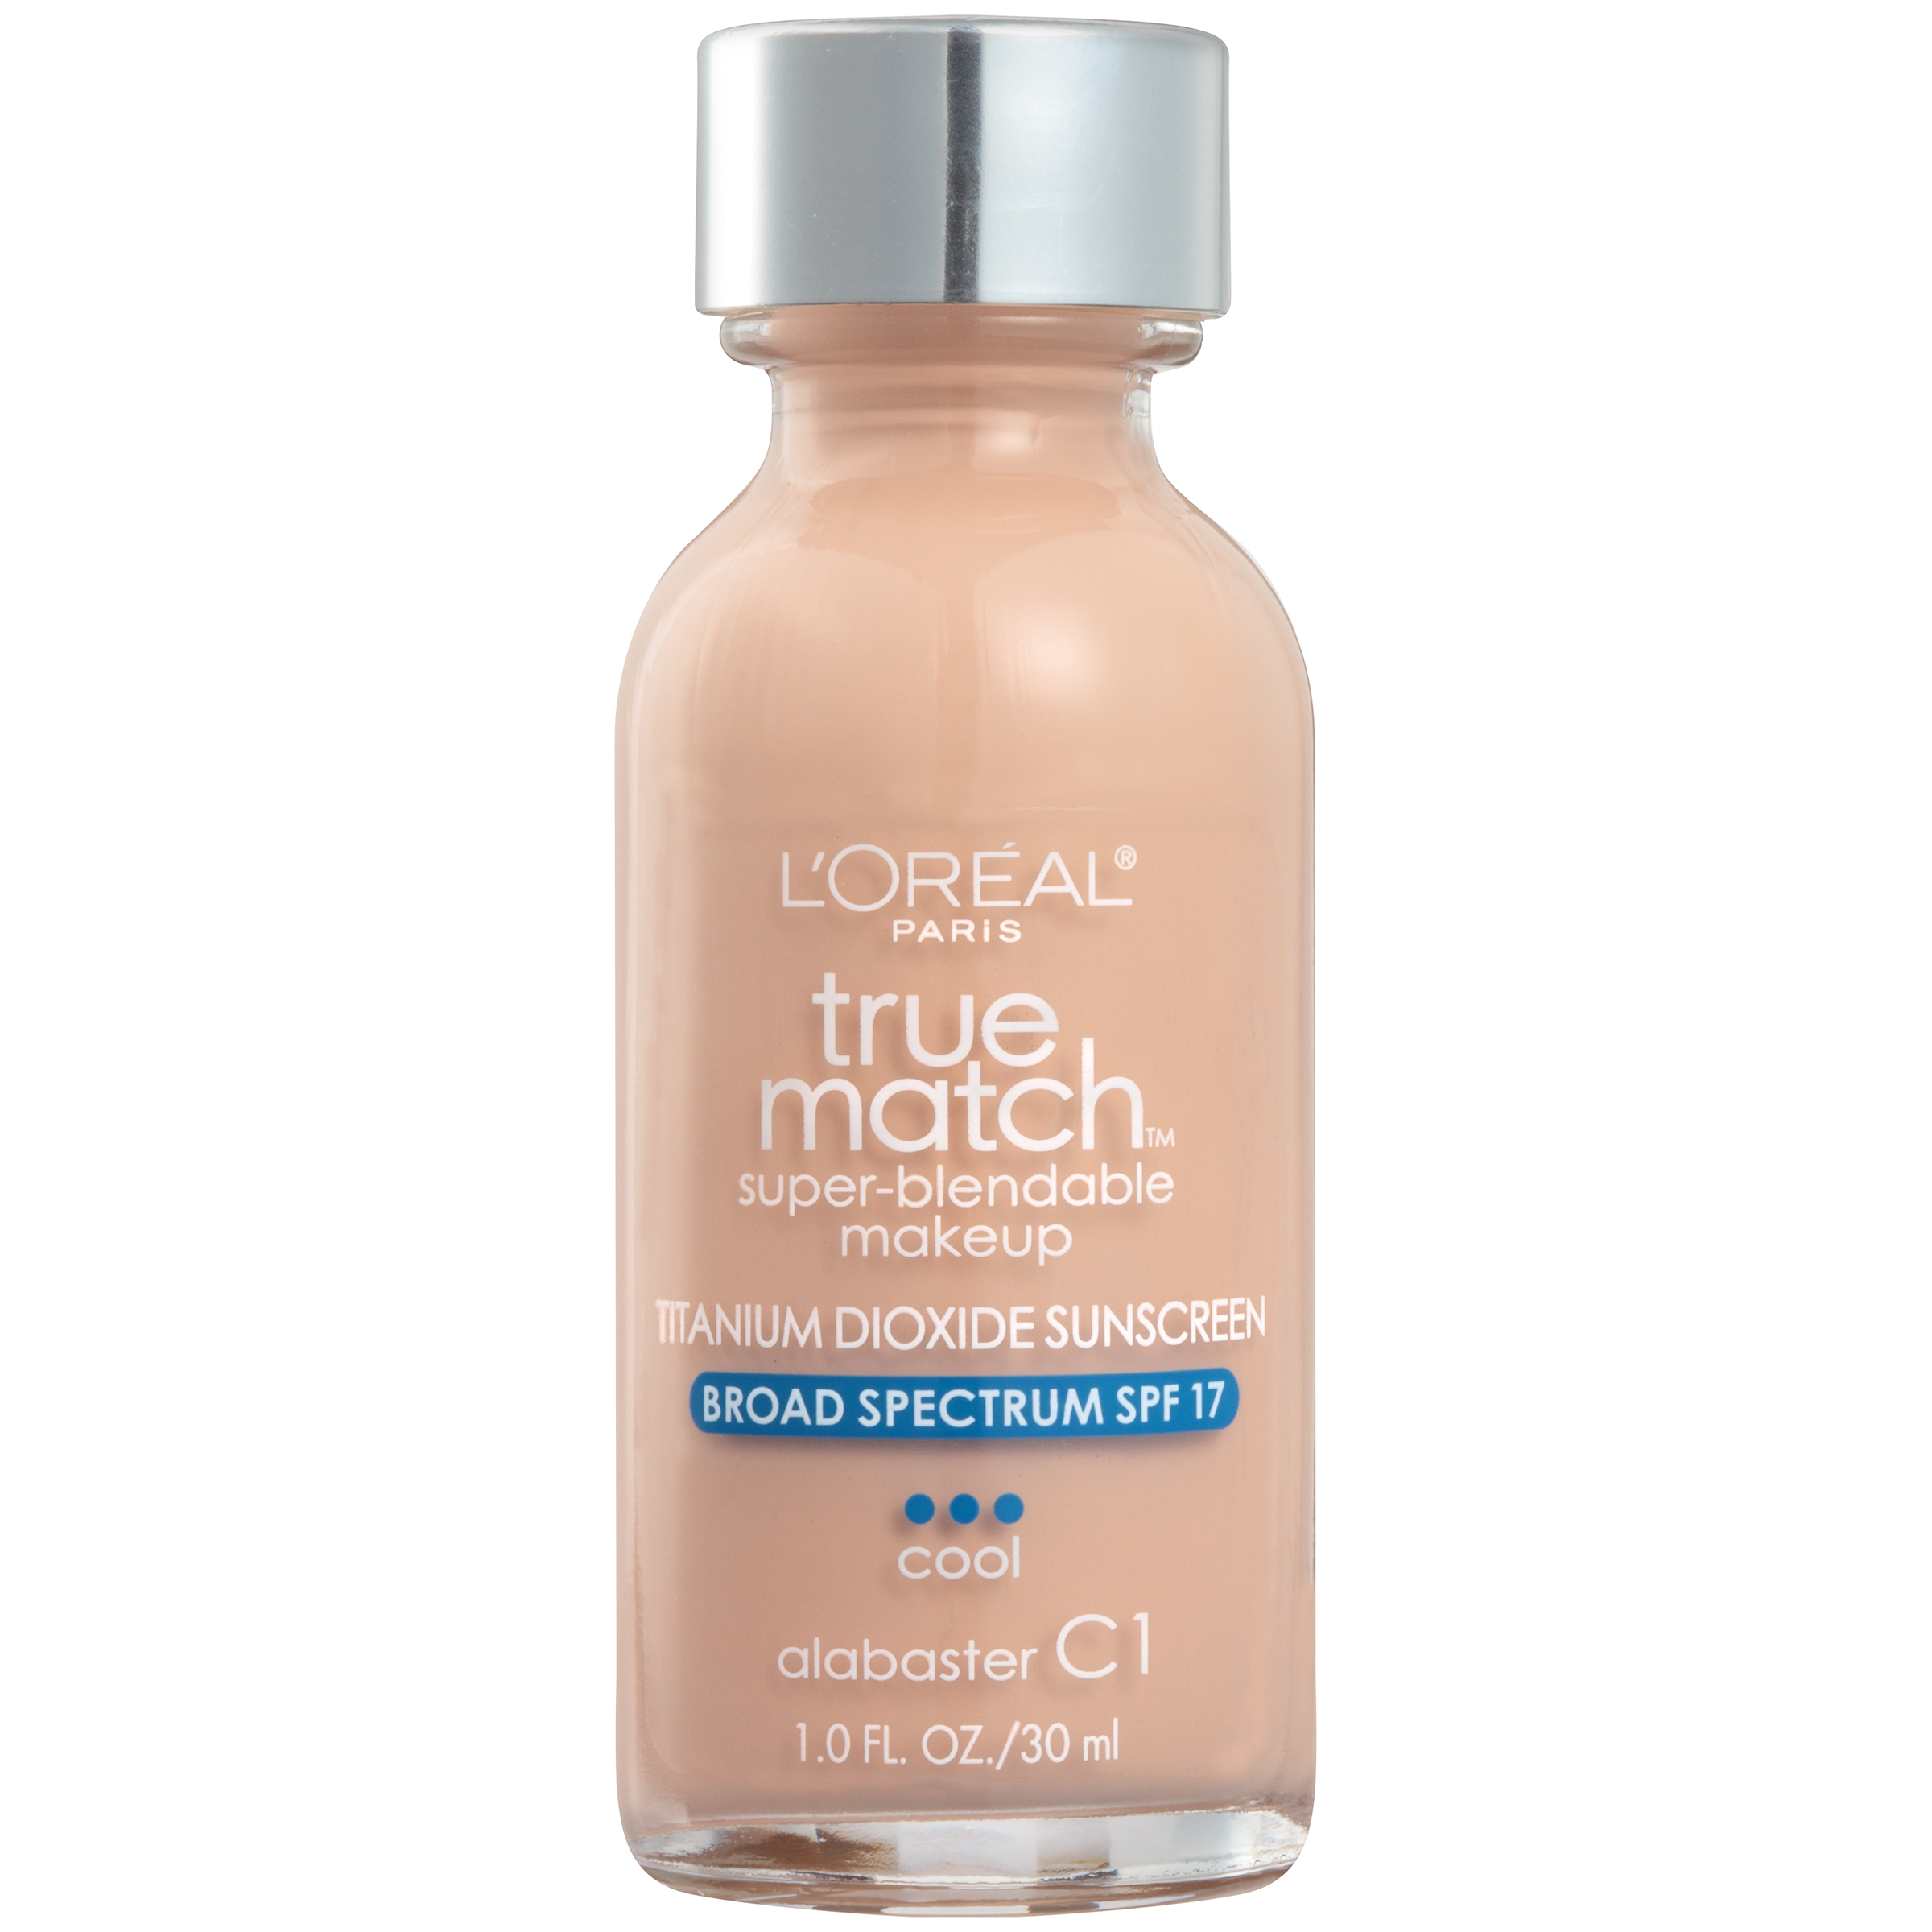 L Oreal Paris True Match Super Blendable Foundation Makeup Spf 17 Buff Beige 1 Fl Oz Walmart Com Walmart Com